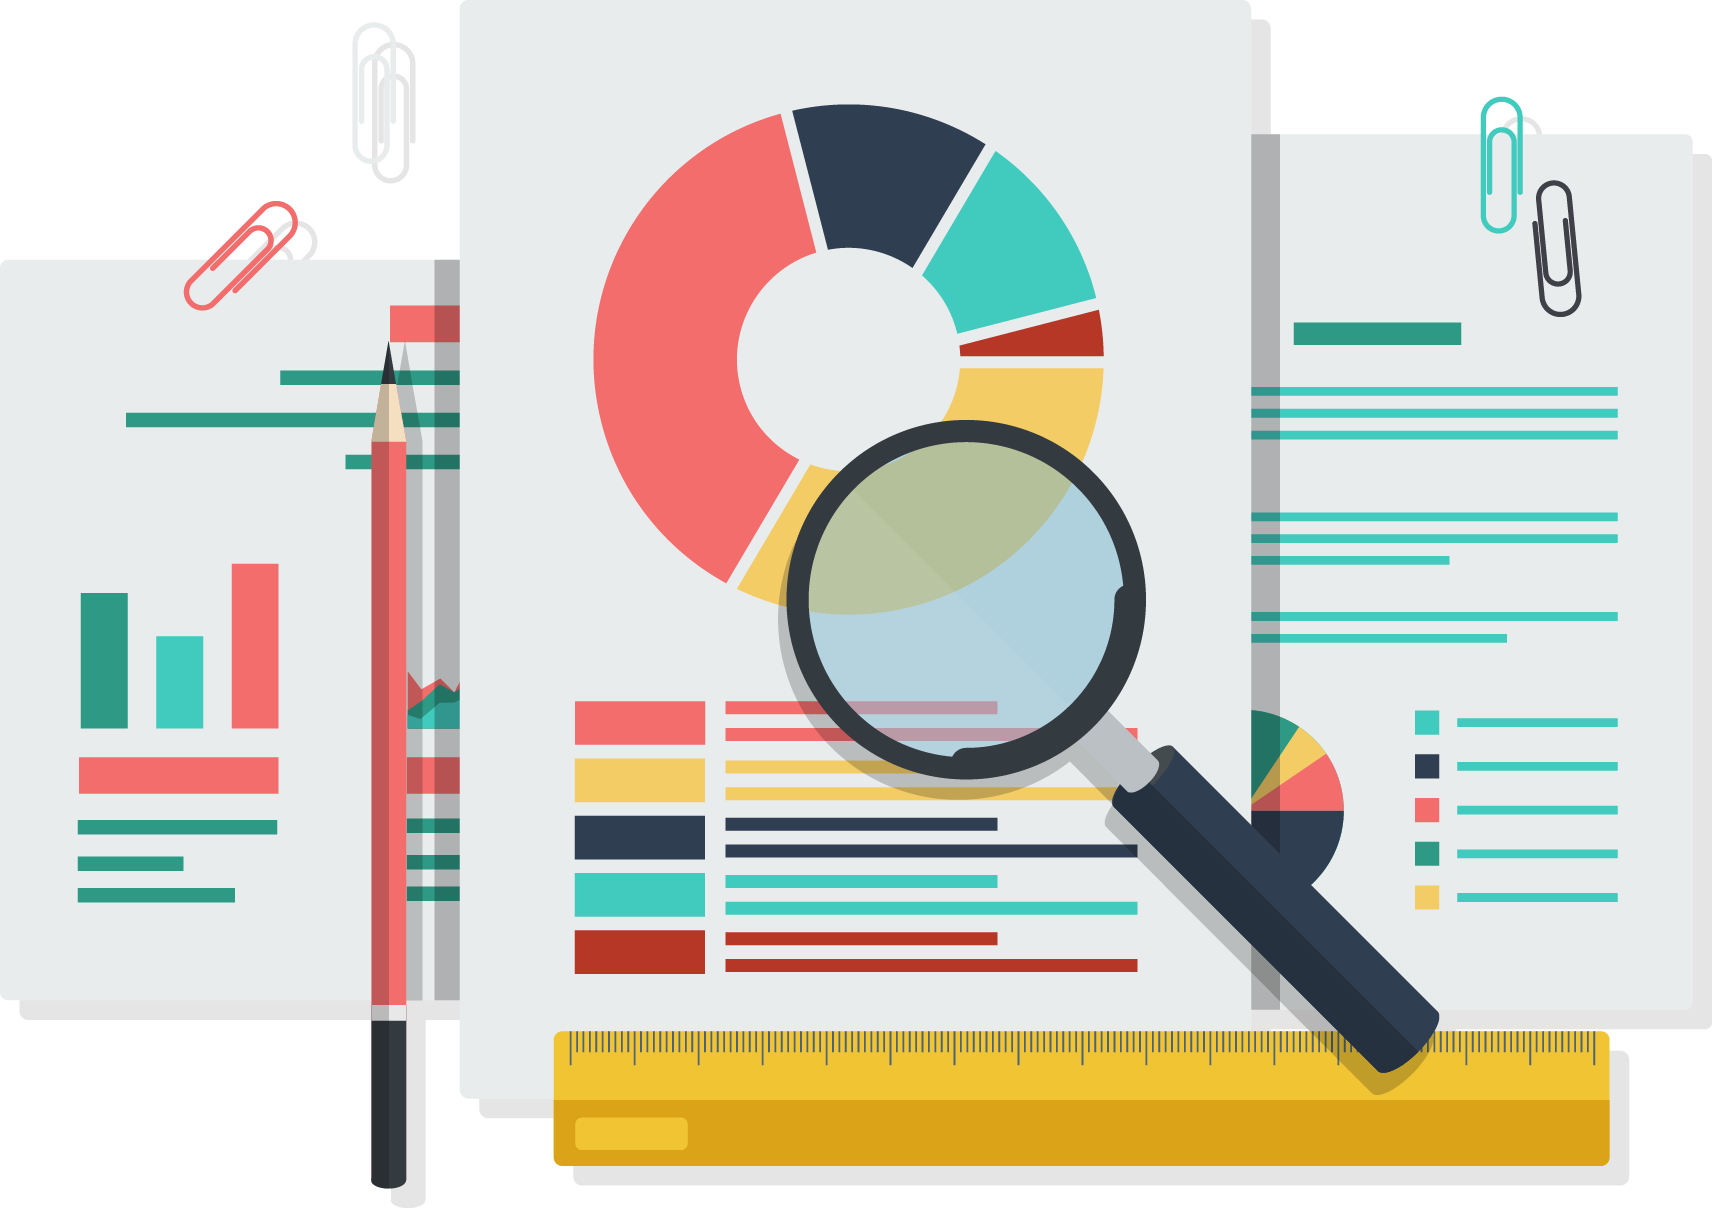 Download Google Business Big Analysis Analytics Data HQ PNG Image in.